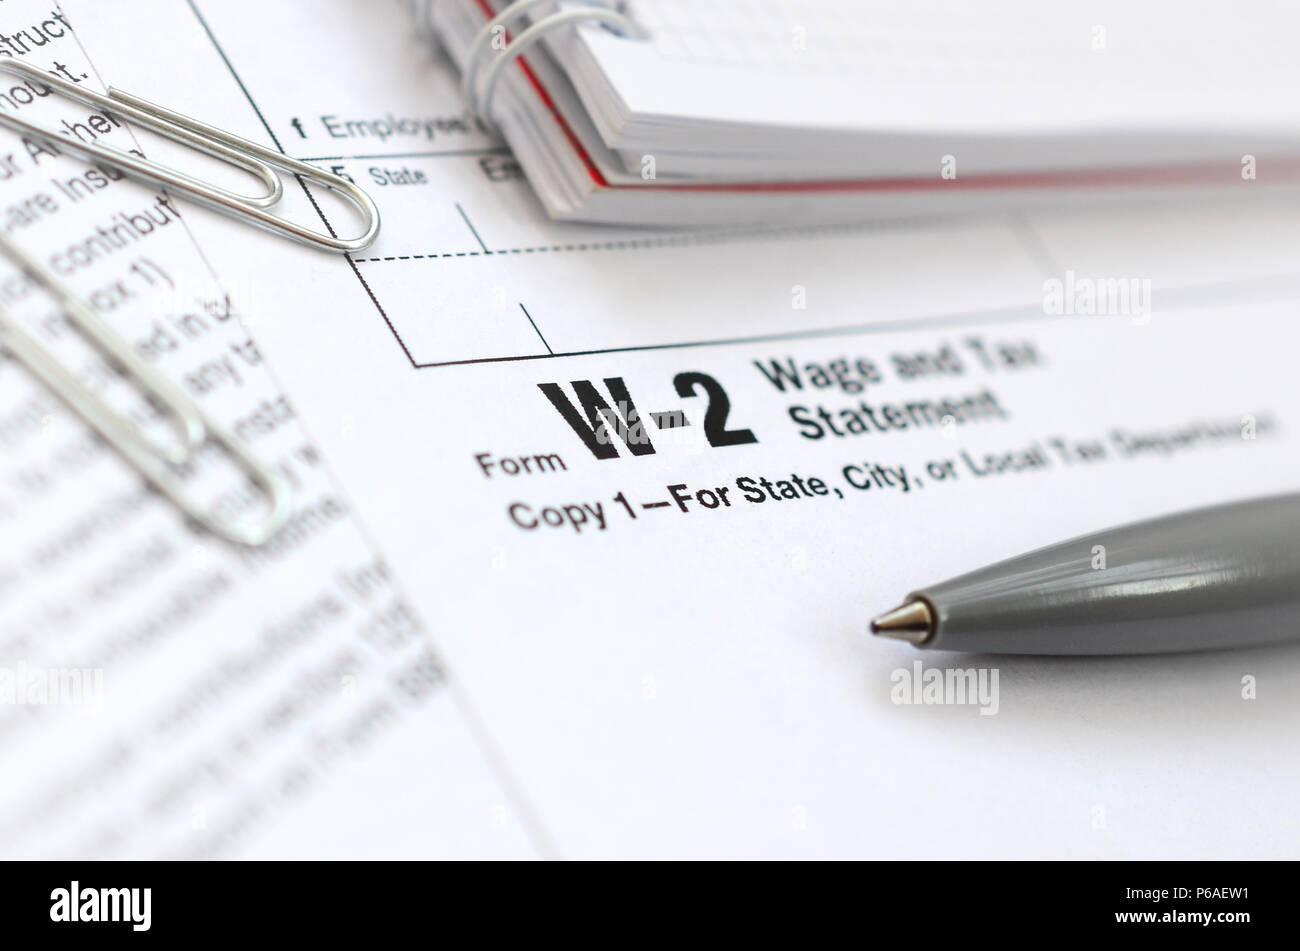 W2 Tax Form Stock Photos Amp W2 Tax Form Stock Images